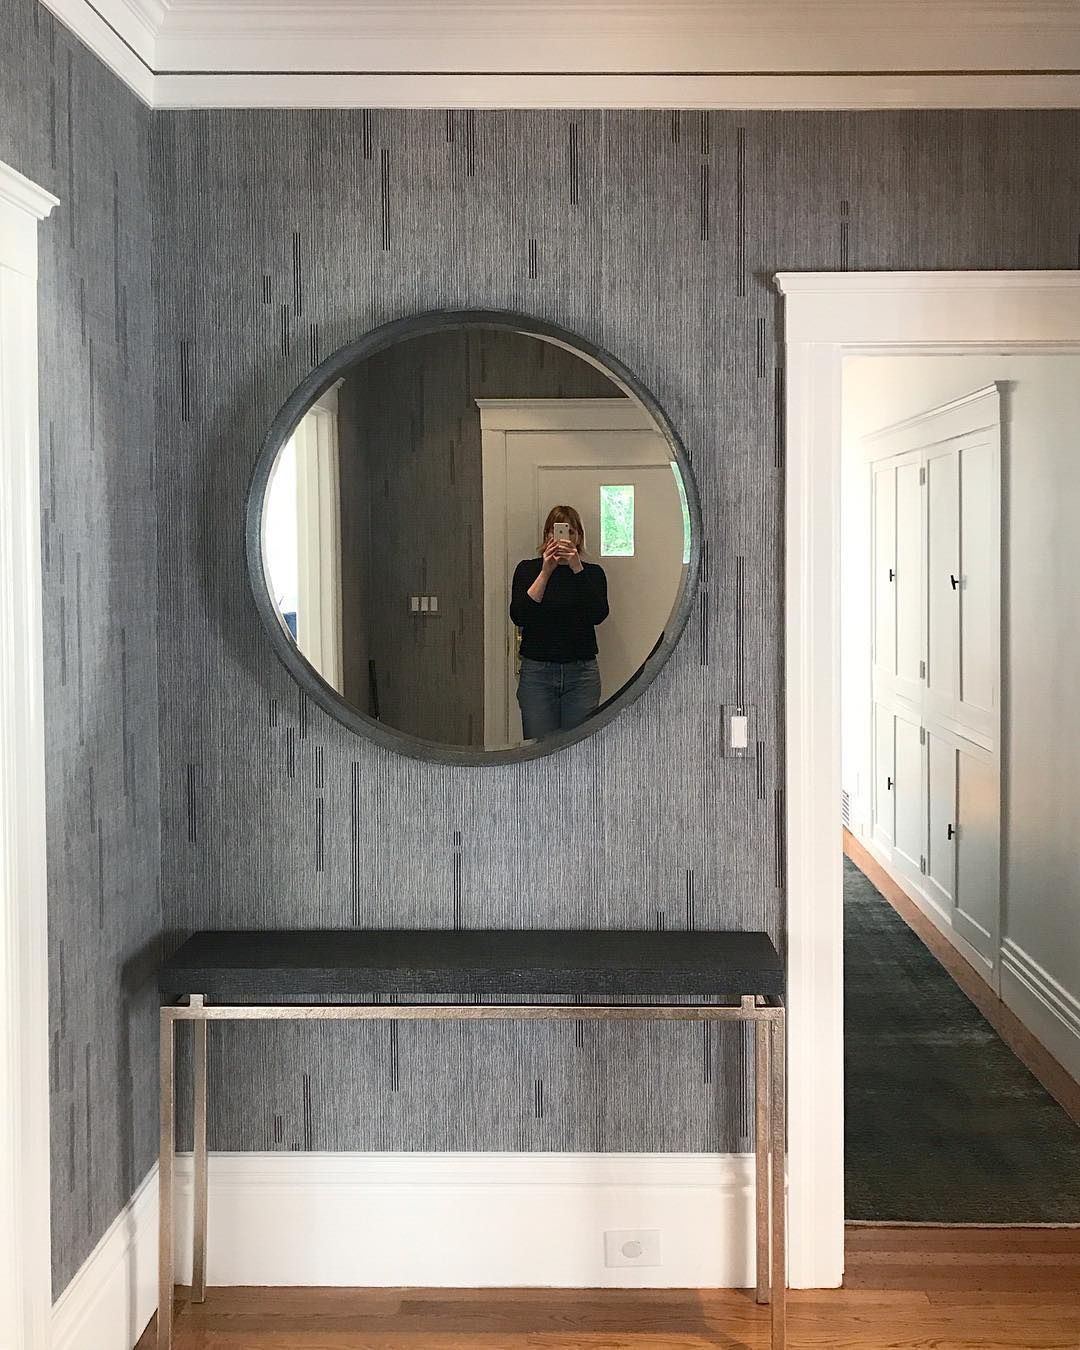 Well Hello There Sneak Peek Of A Tailor Grasscloth Install Captured By The Ladies Of Macfeedesign Can T Wa Round Mirror Bathroom Grasscloth Bathroom Mirror